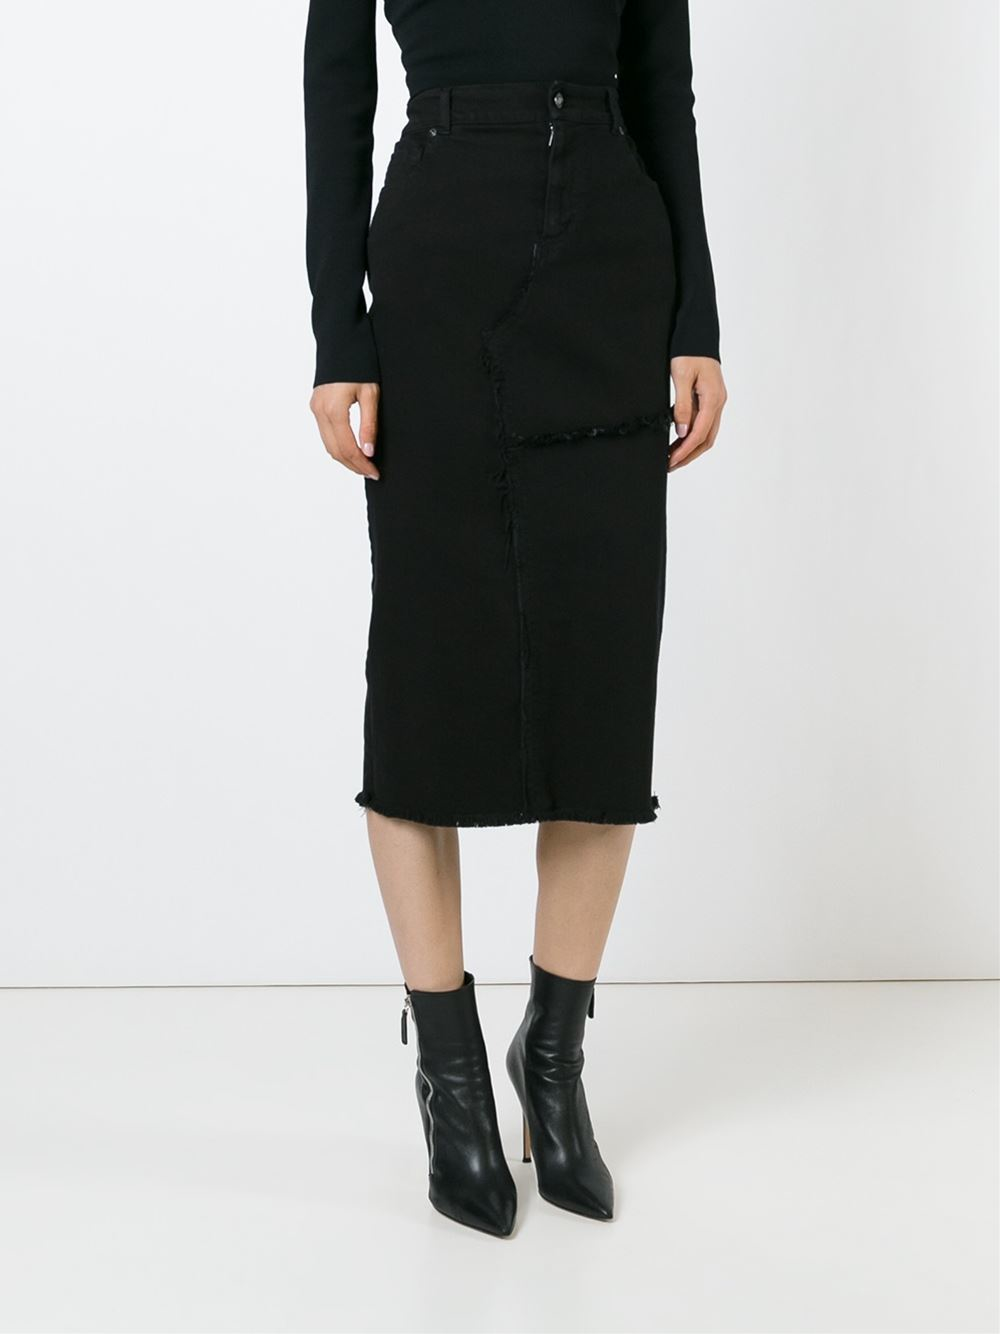 Tom ford Denim Midi Skirt in Black | Lyst